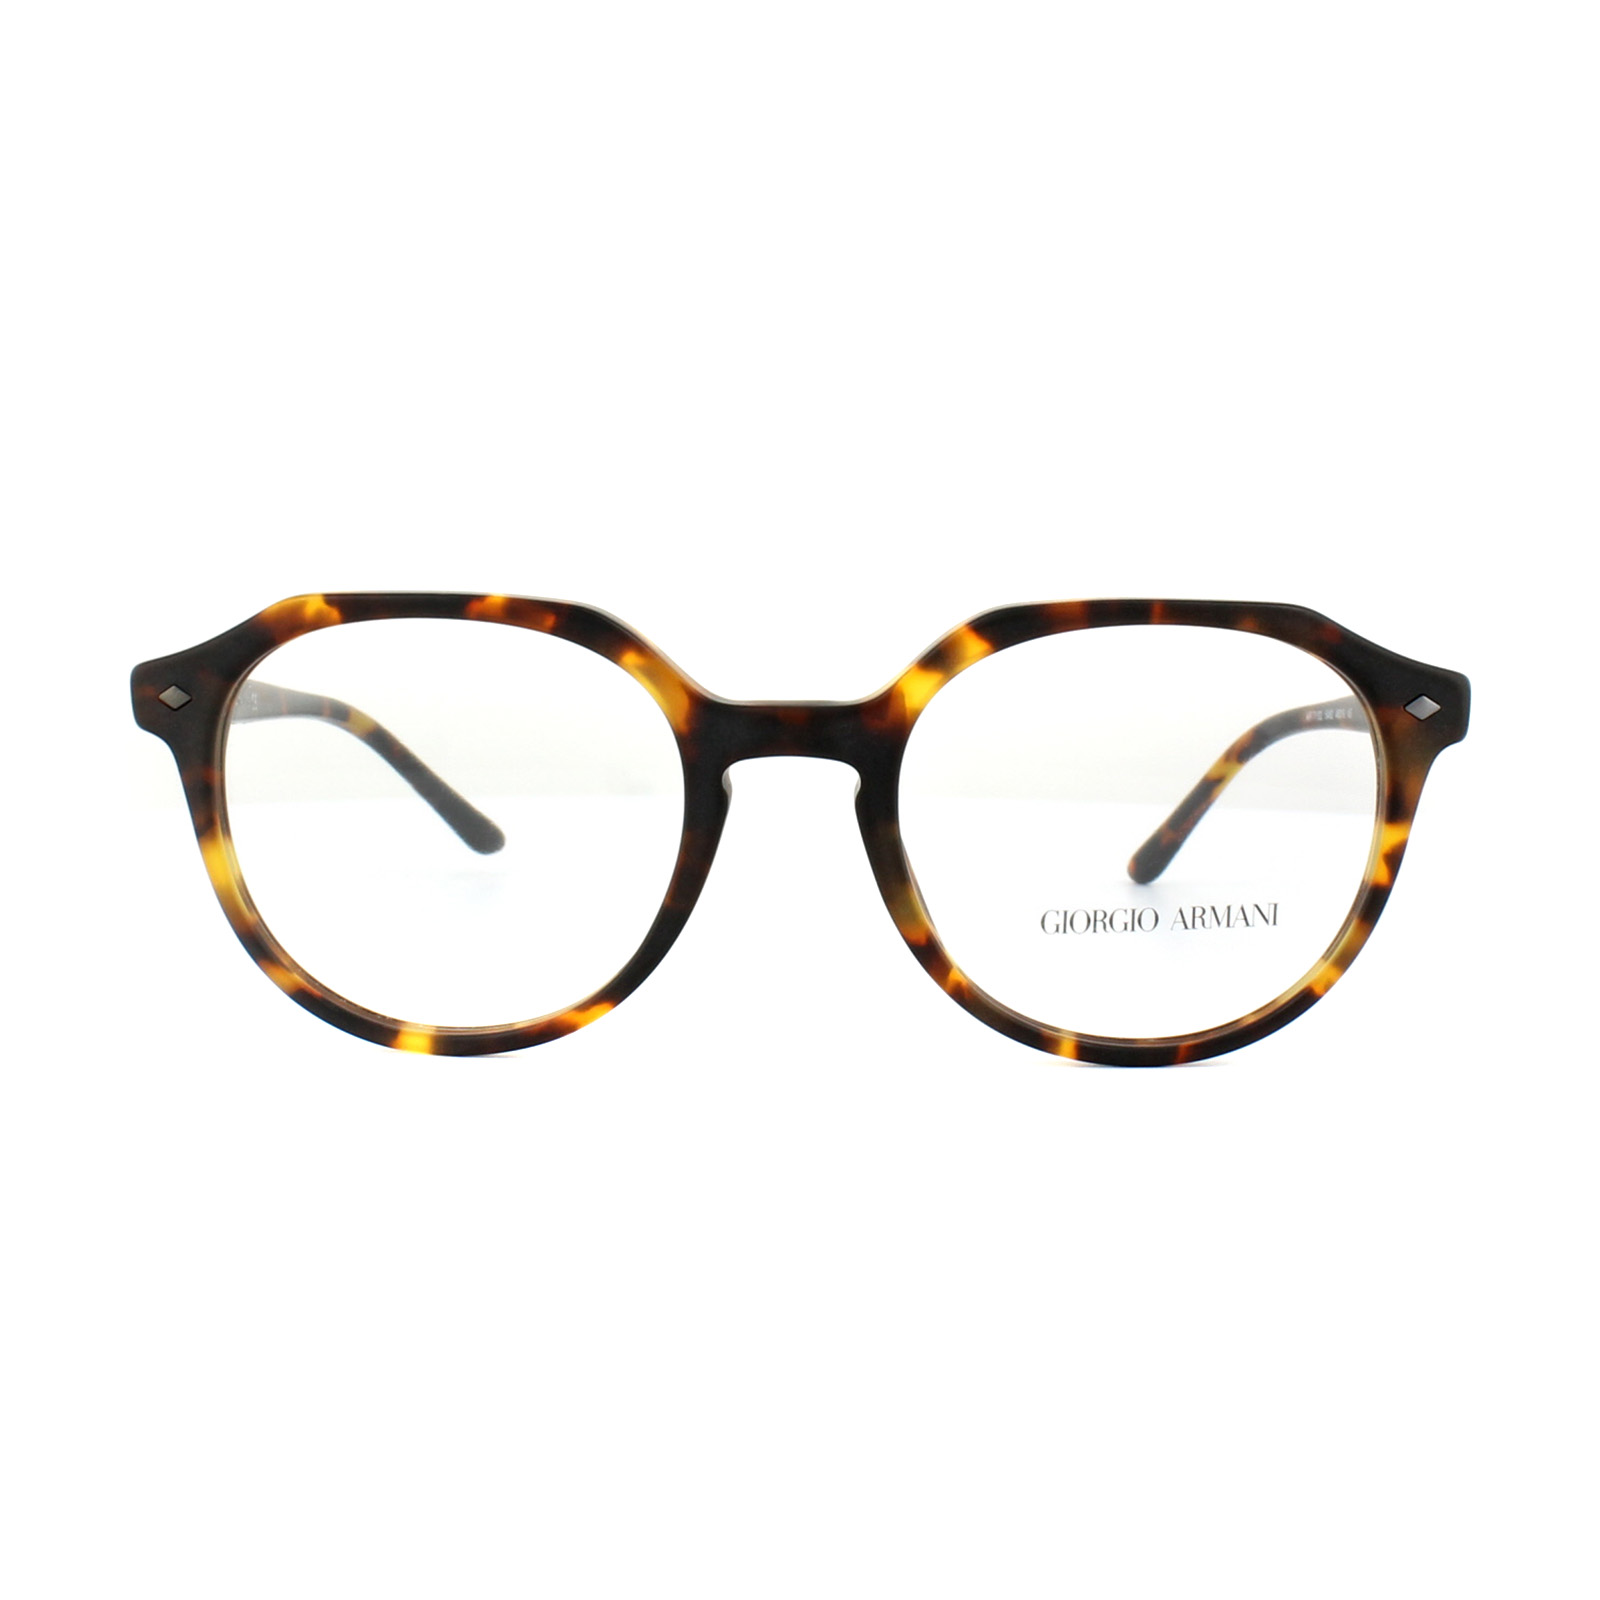 Giorgio Armani Glasses Frames AR 7132 5492 Matt Havana Mens 48mm ...